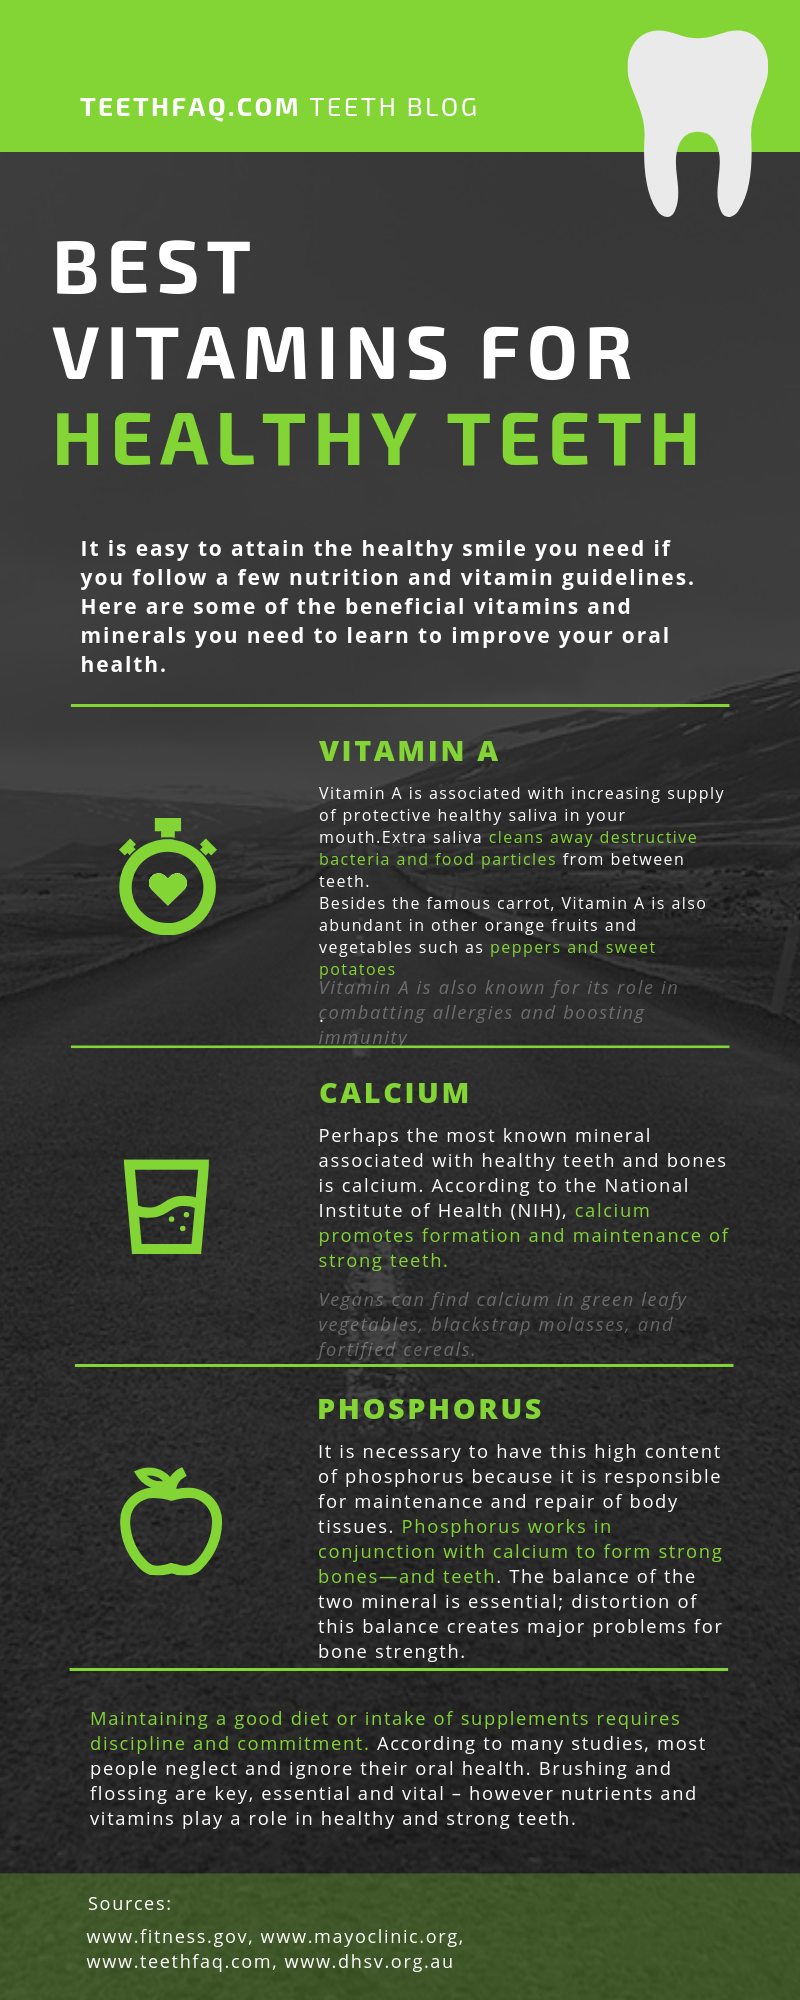 vitamins for healthy teeth infographic showing the top five vitamins to help make teeth stronger and healthier